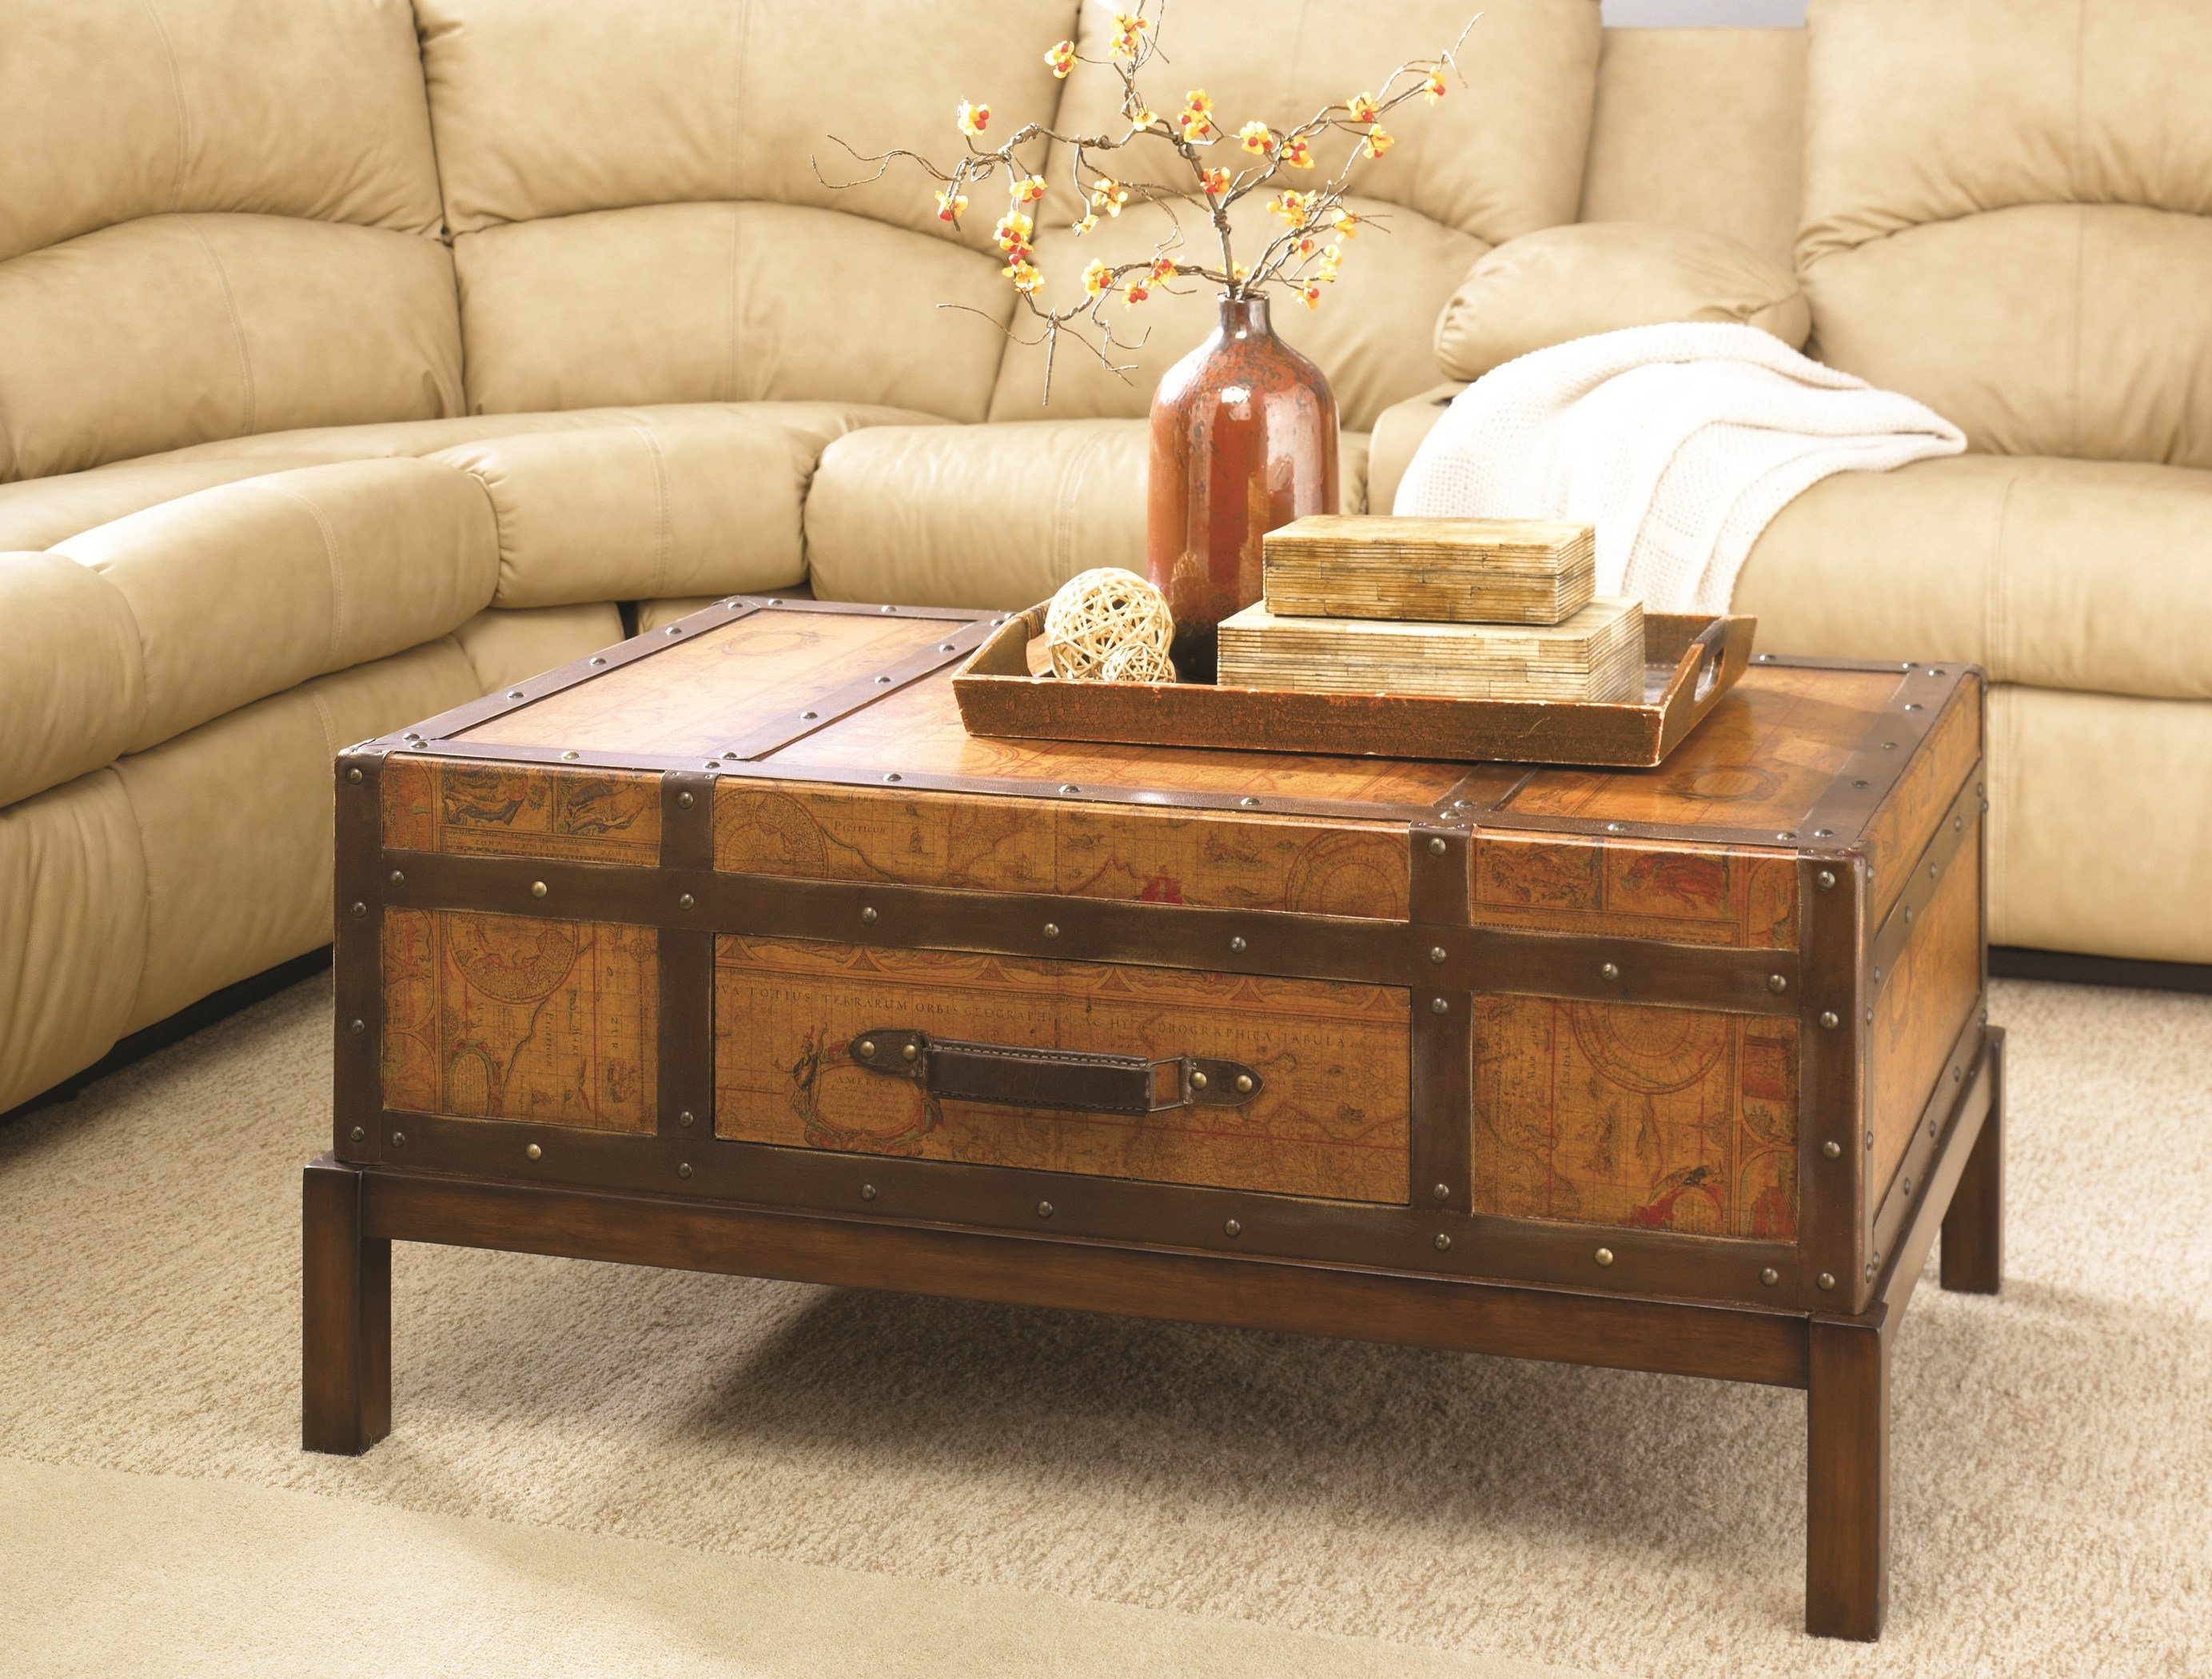 Trunk Coffee Table Target Furnitures